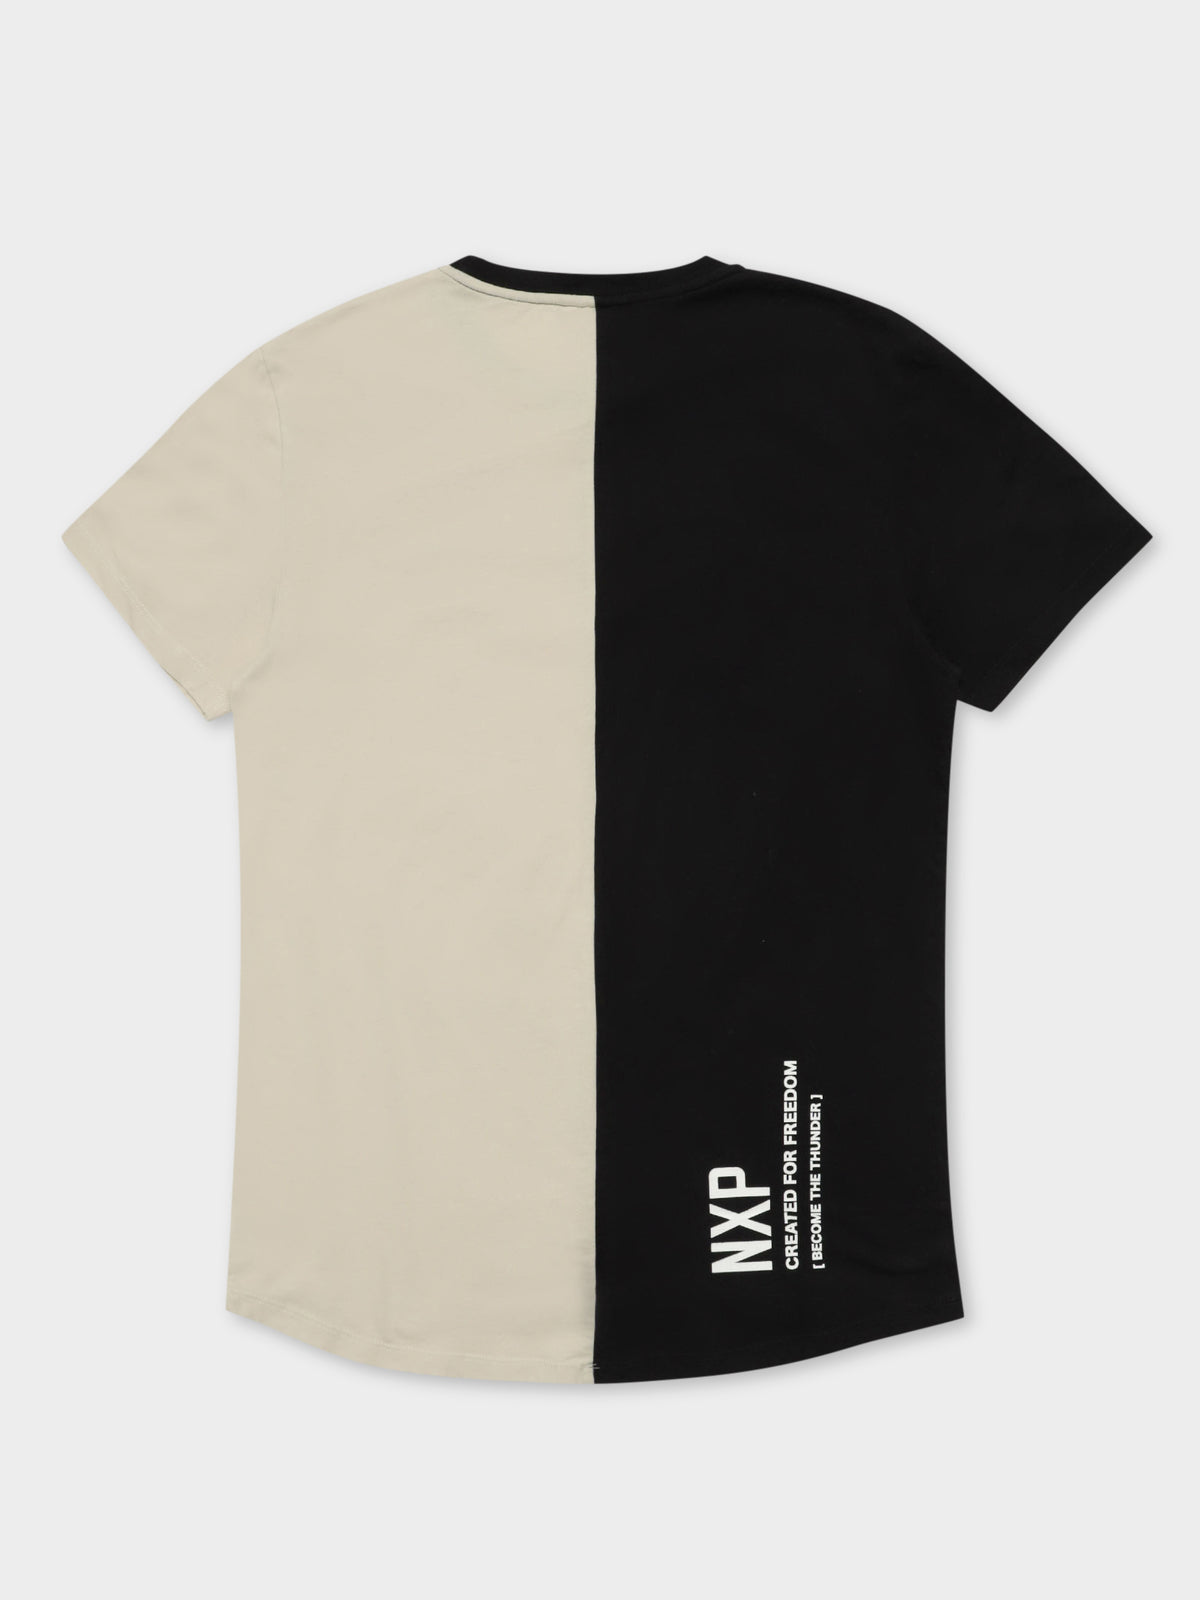 Interlagos T-Shirt in Black & Beige